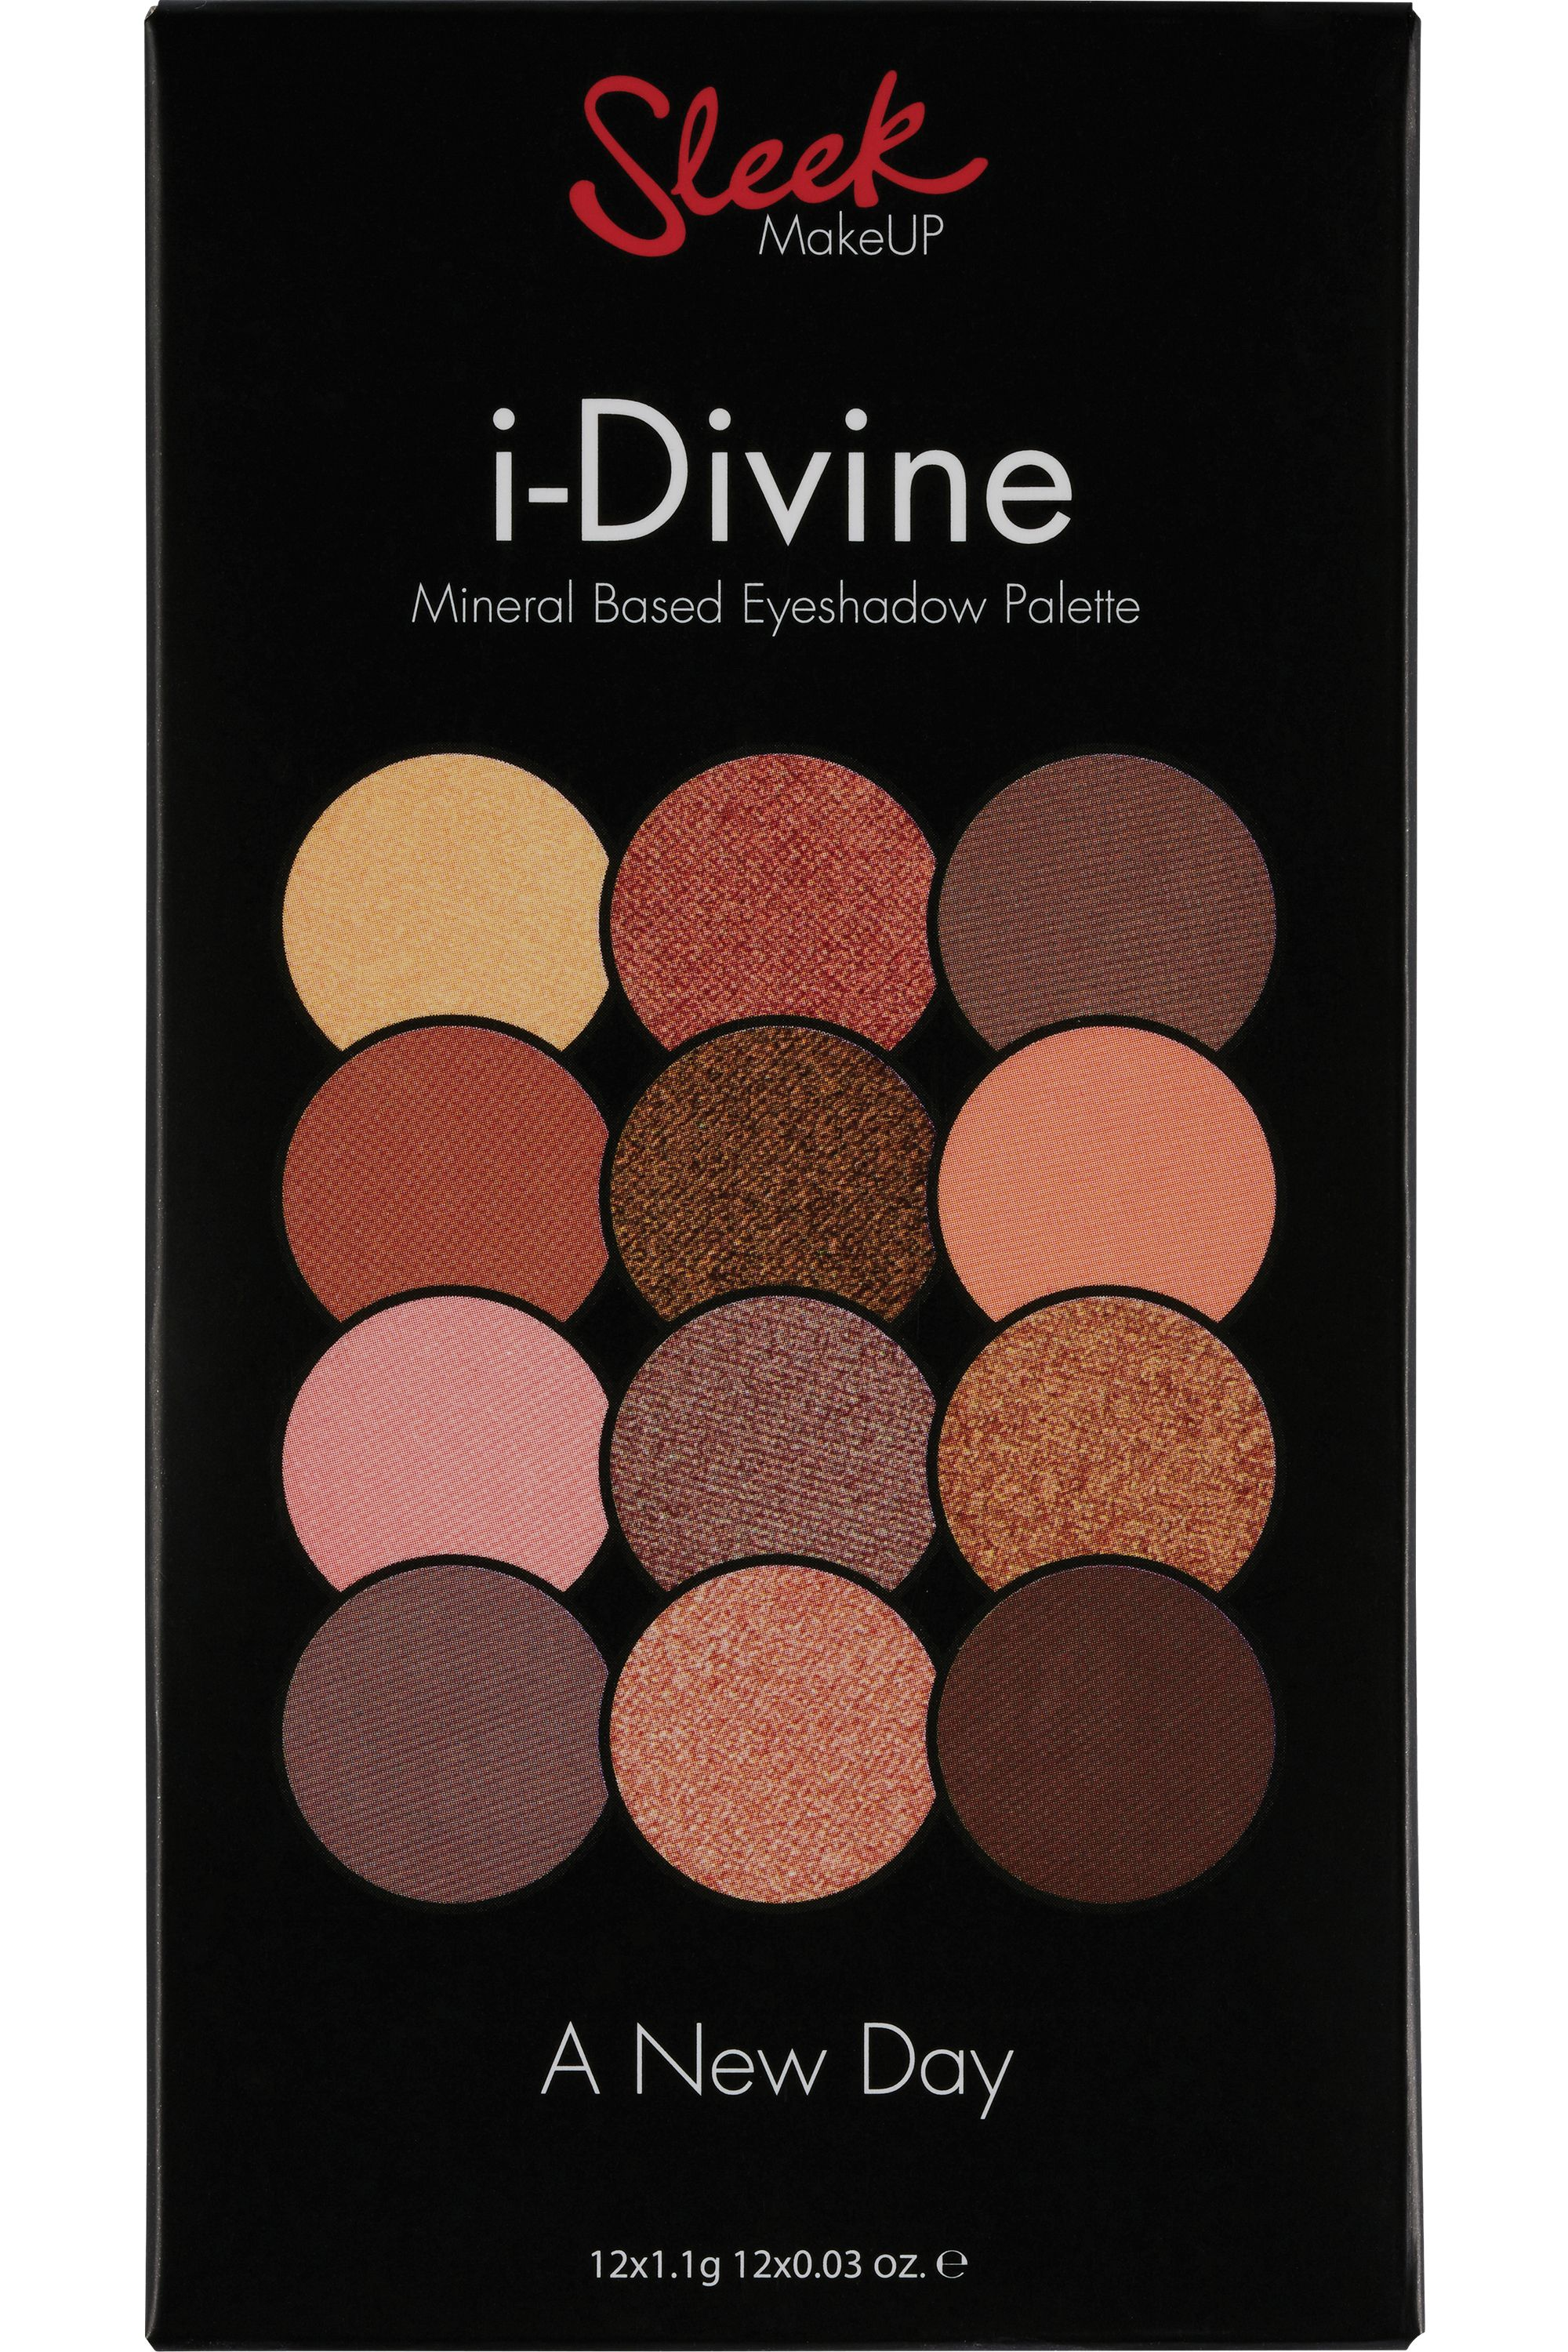 Blissim : Sleek MakeUP - Palette de fards à paupières i-Divine - A New Day